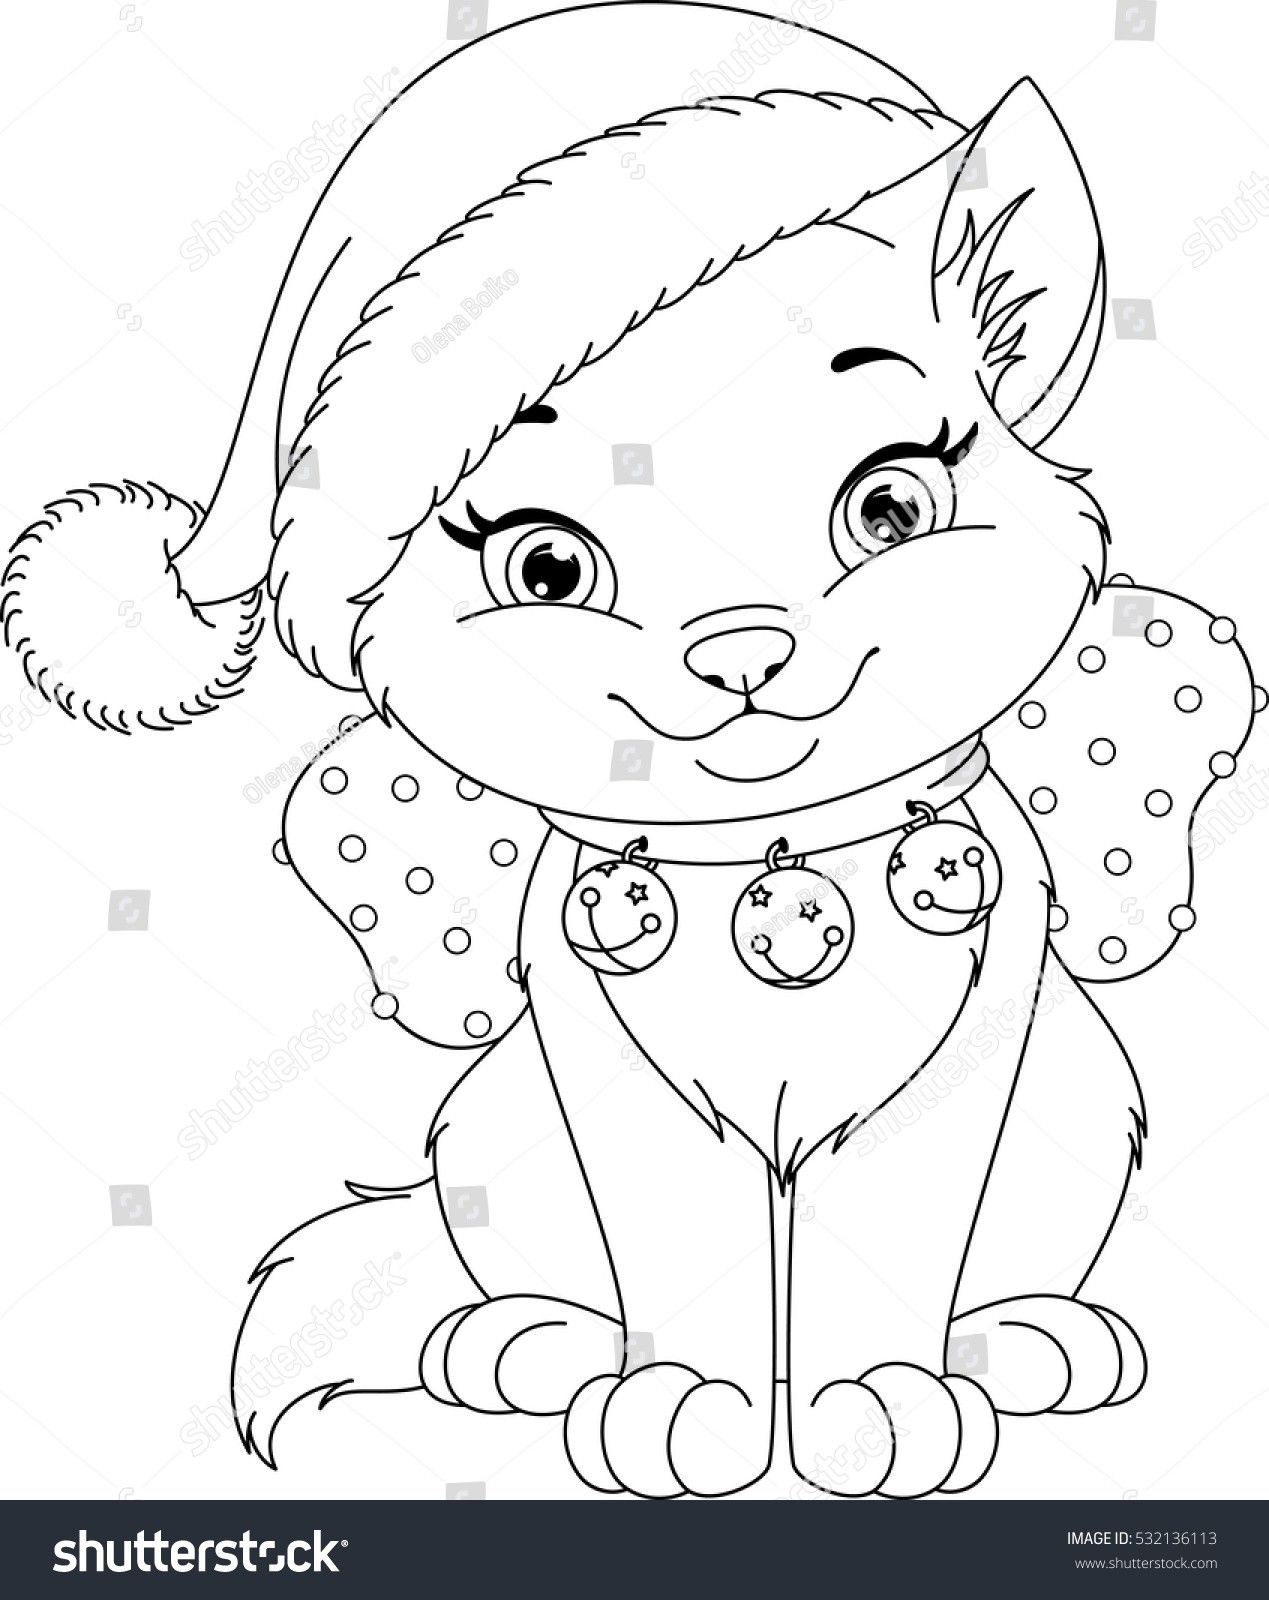 Christmas Cat Coloring Page Through The Thousand Pictures Online Regarding Chr Printable Christmas Coloring Pages Cat Coloring Book Christmas Coloring Sheets